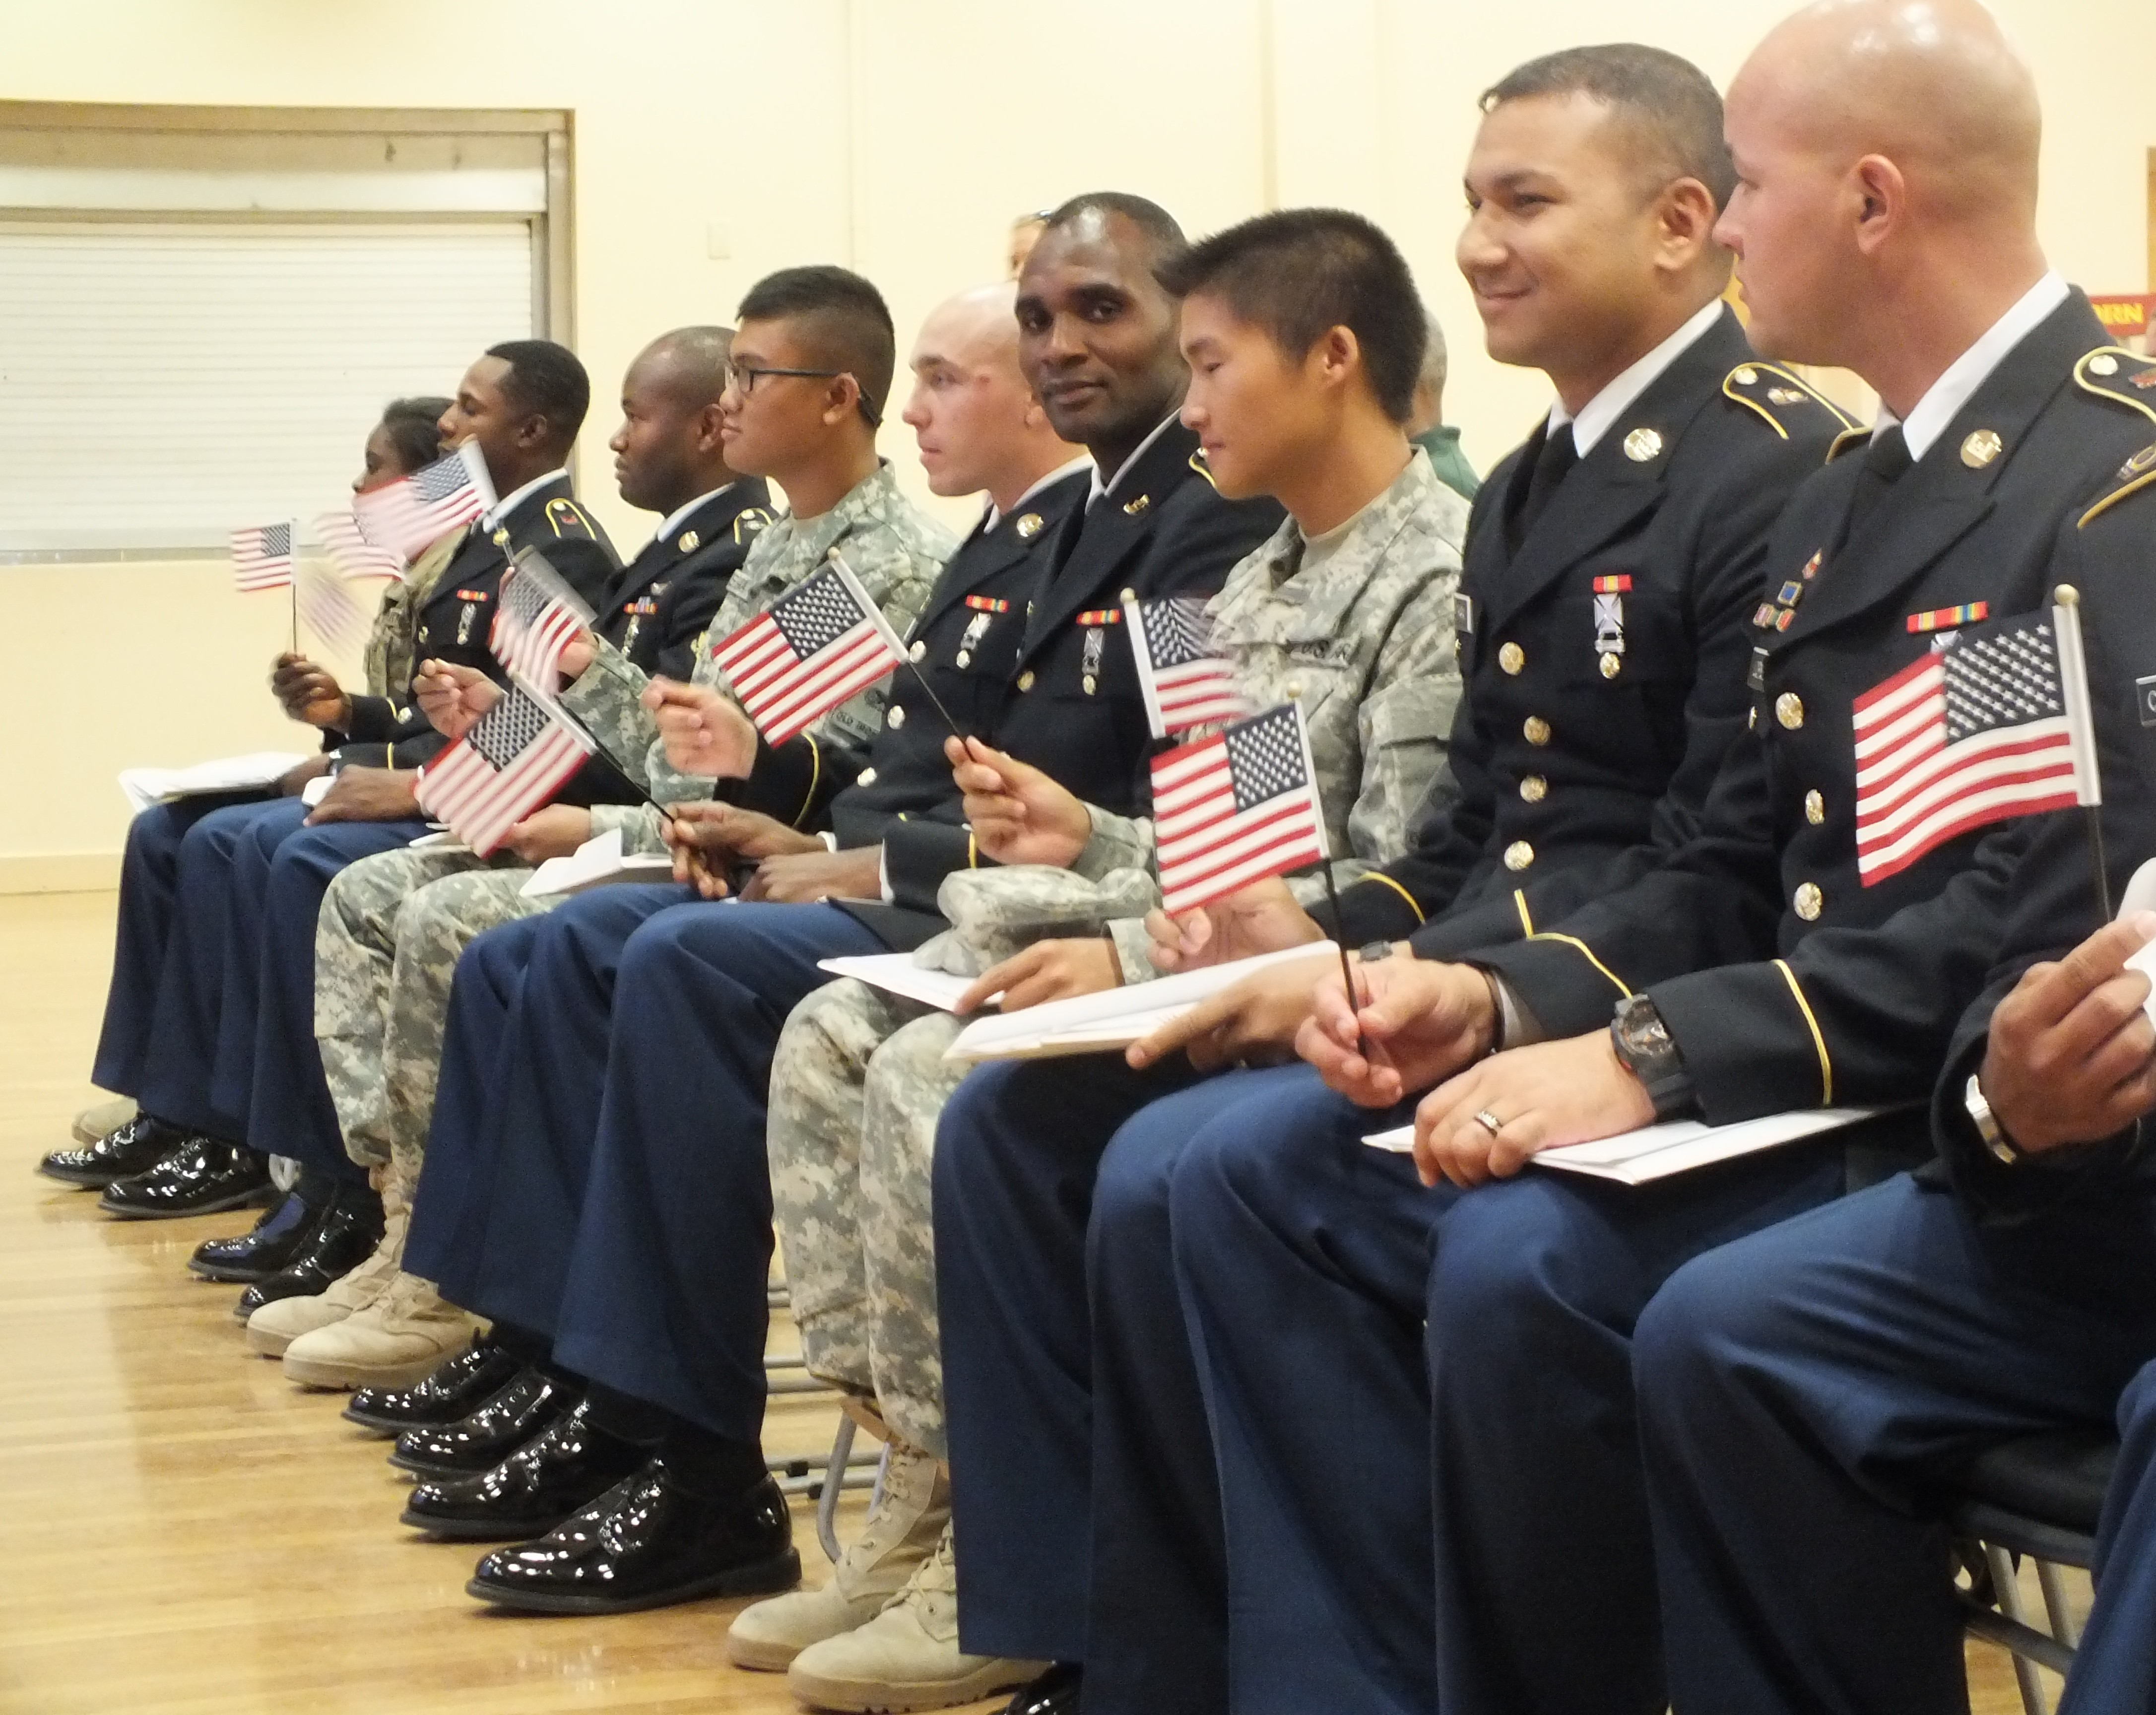 immigrant to citizen u s citizenship and immigration services countries become new u s citizens in a special naturalization ceremony held on fort bliss photo credit u s citizenship and immigration services